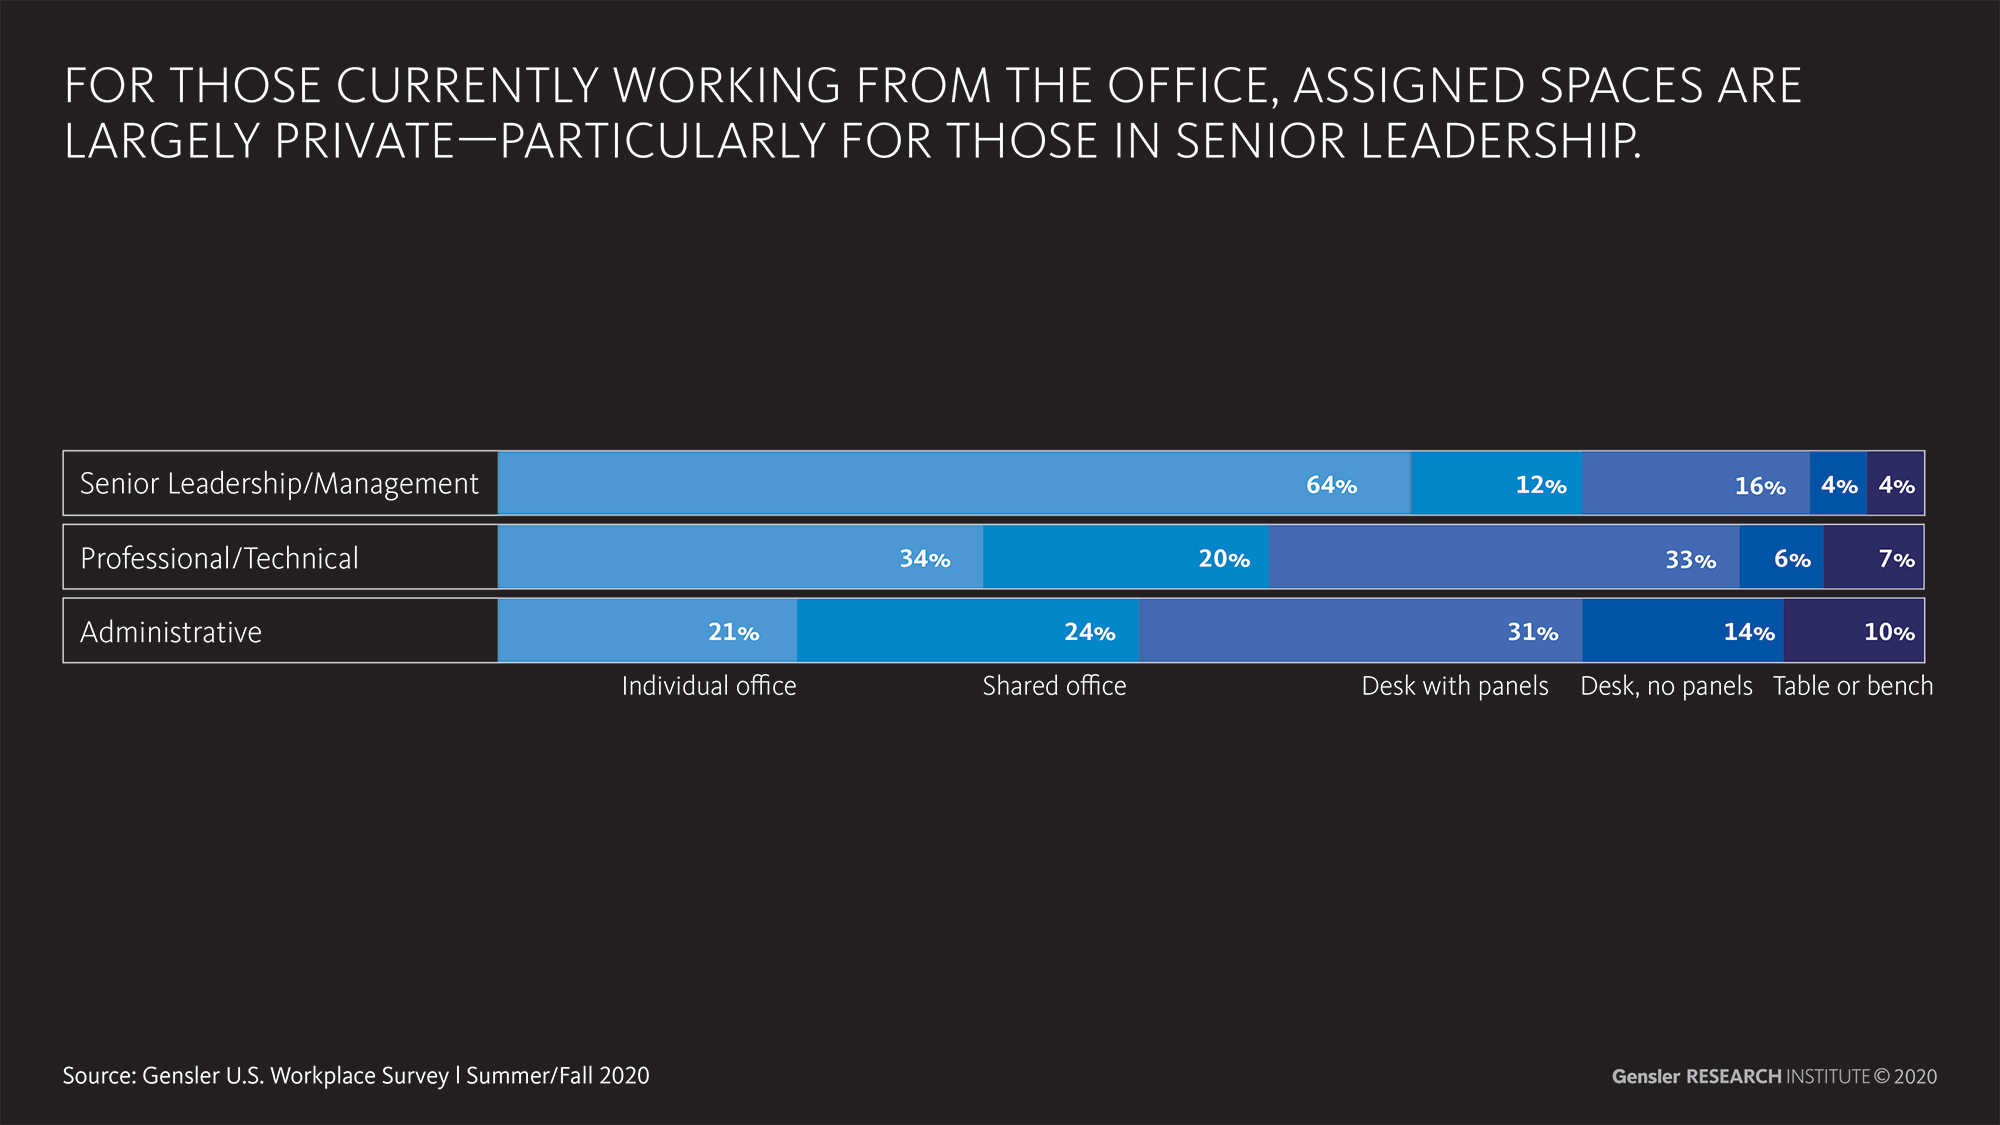 Gensler's survey assigned spaces in the office